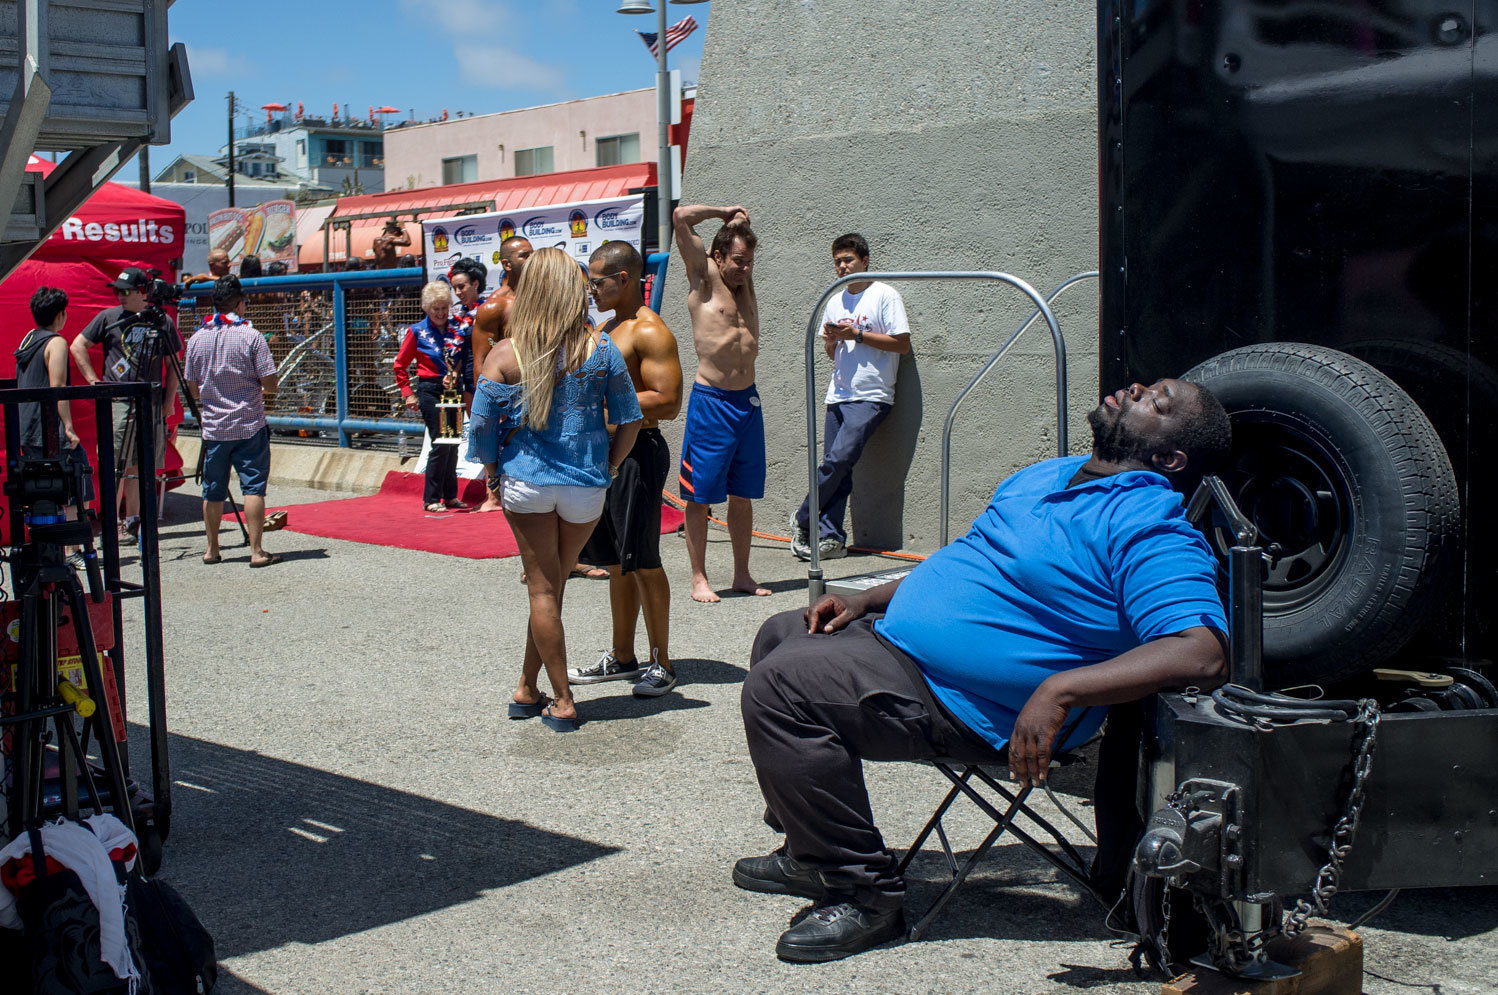 Venice Muscle. A summer with the Bodybuilders of Venice Beach, California.